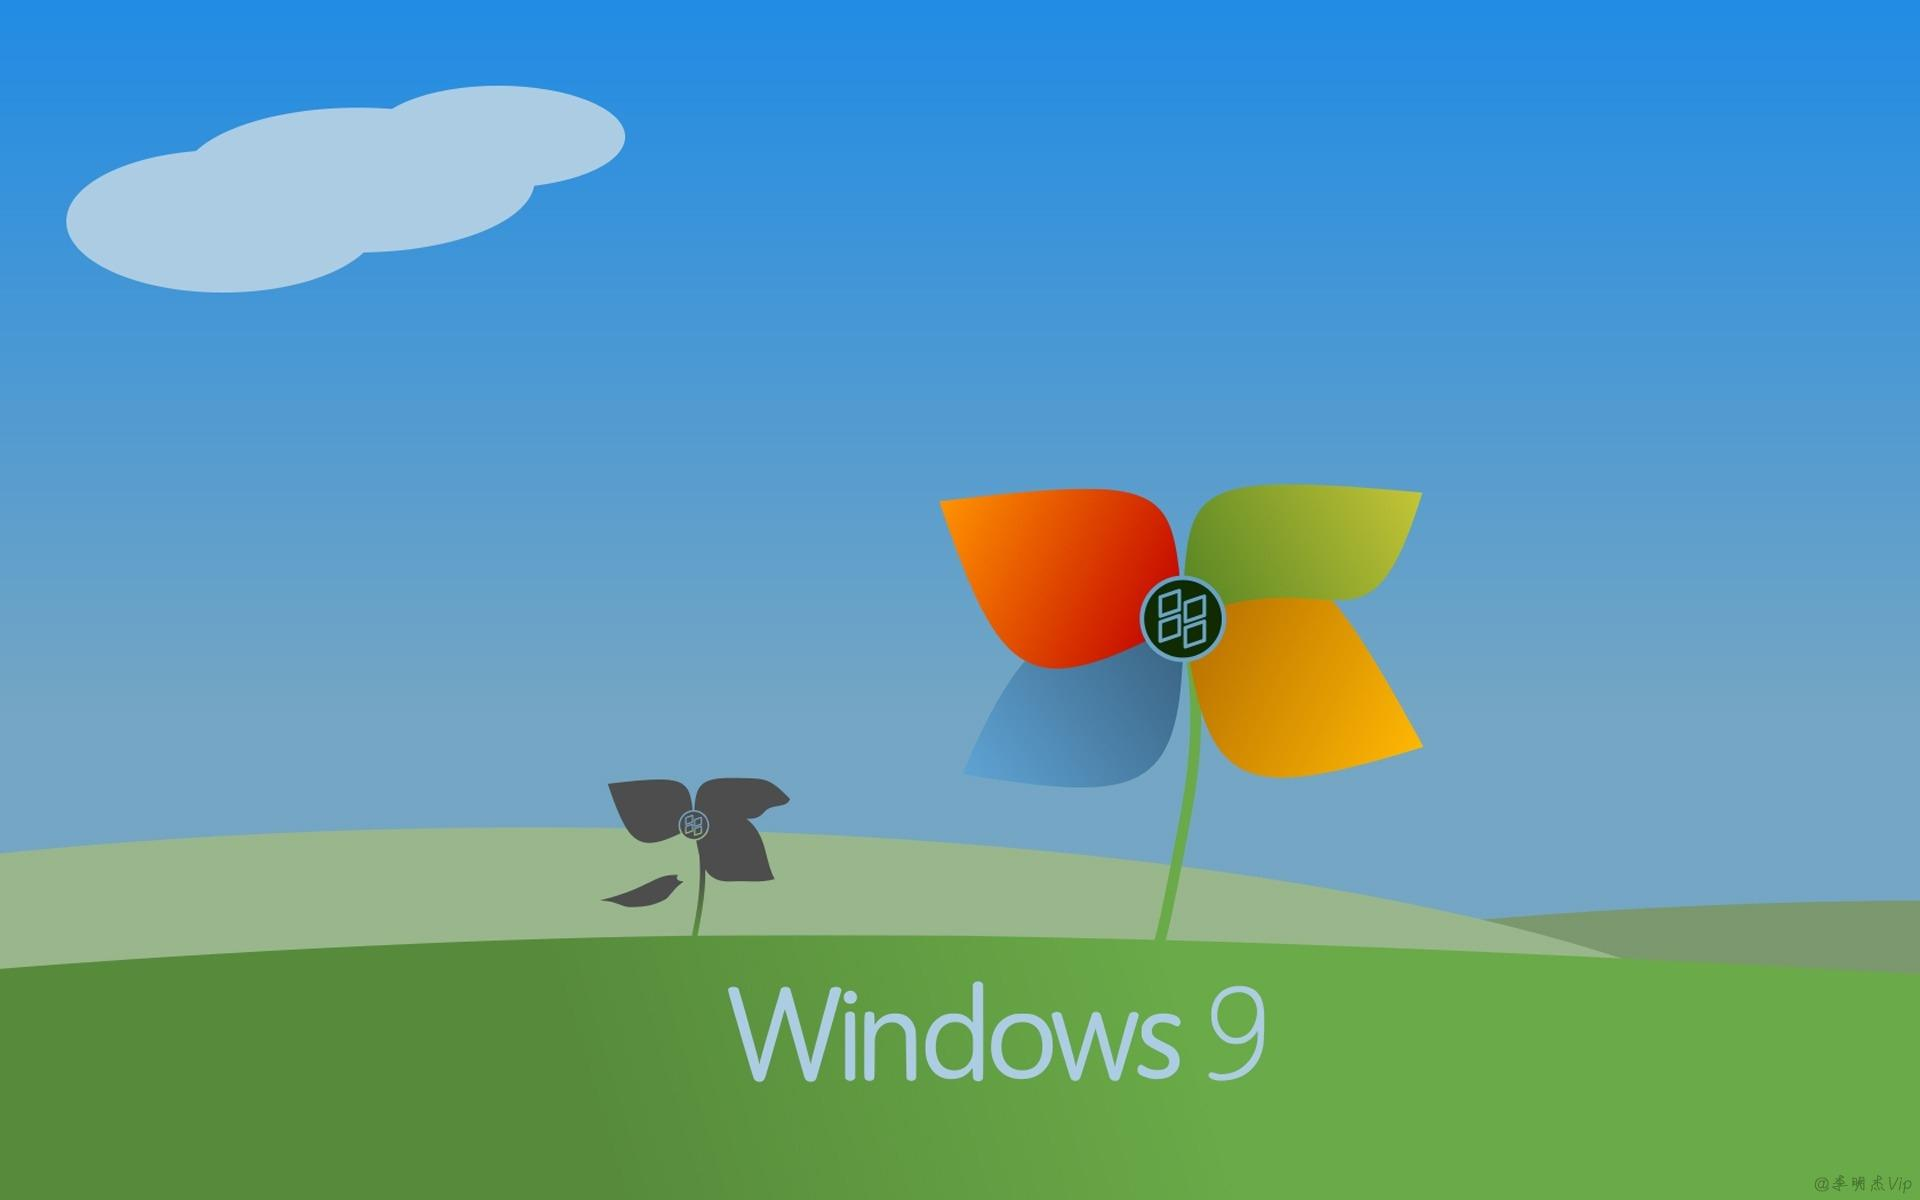 Windows 9 wallpapers HD quality